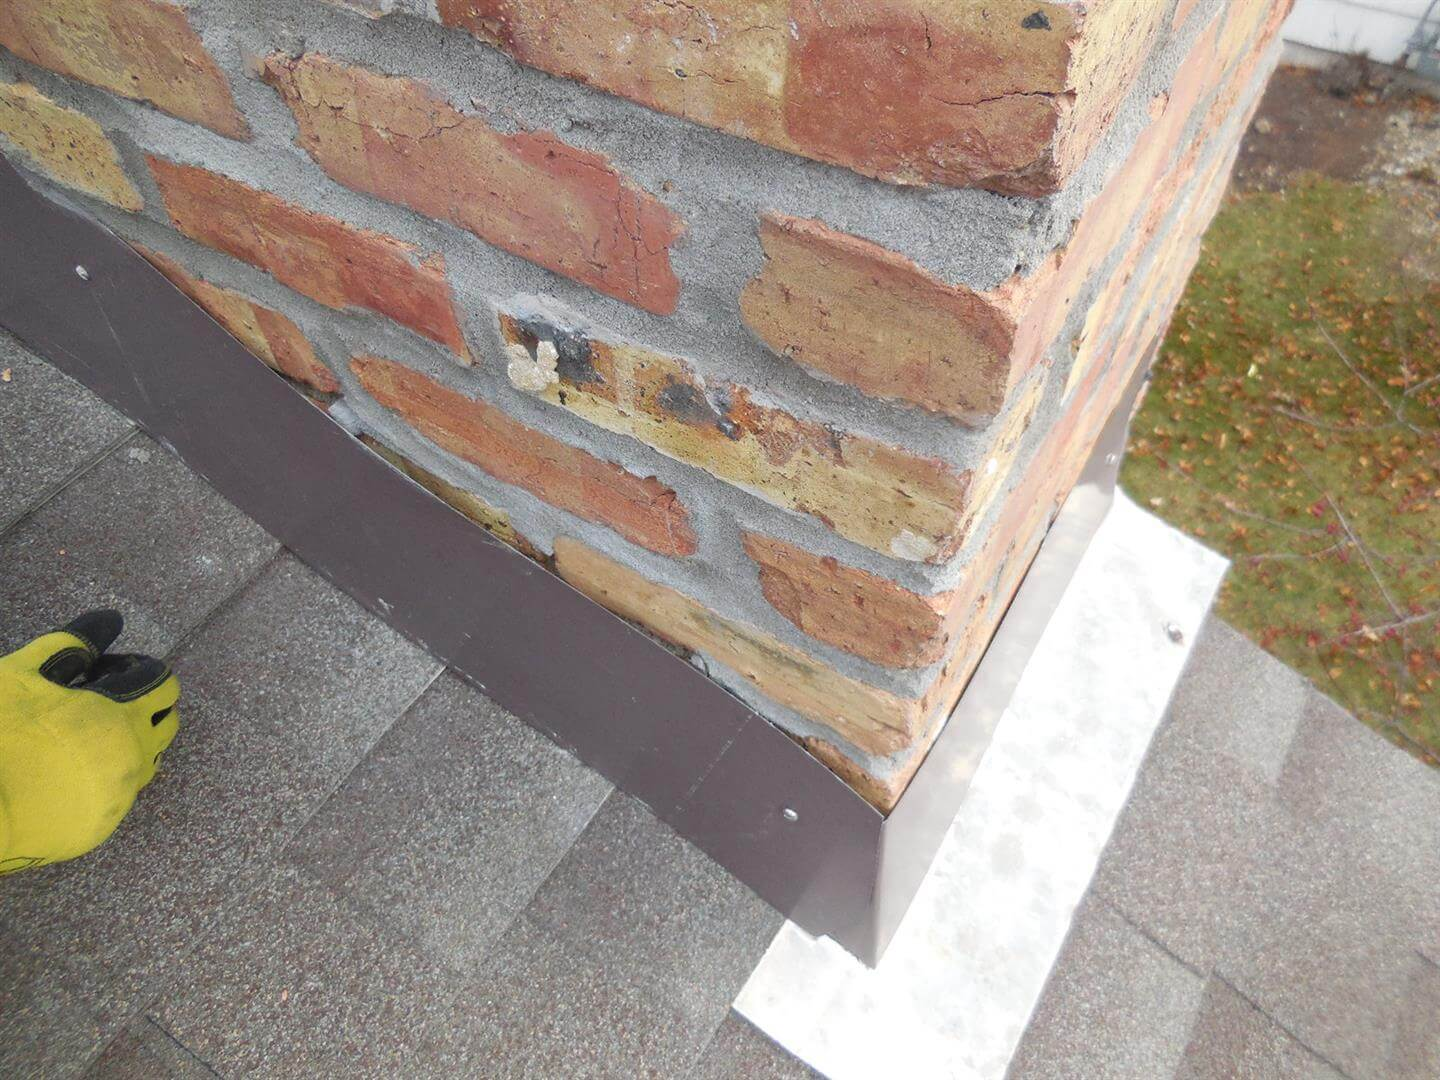 How to inspect your own house part 1 roof and chimney homesmsp - Build sealed fireplace home step step ...